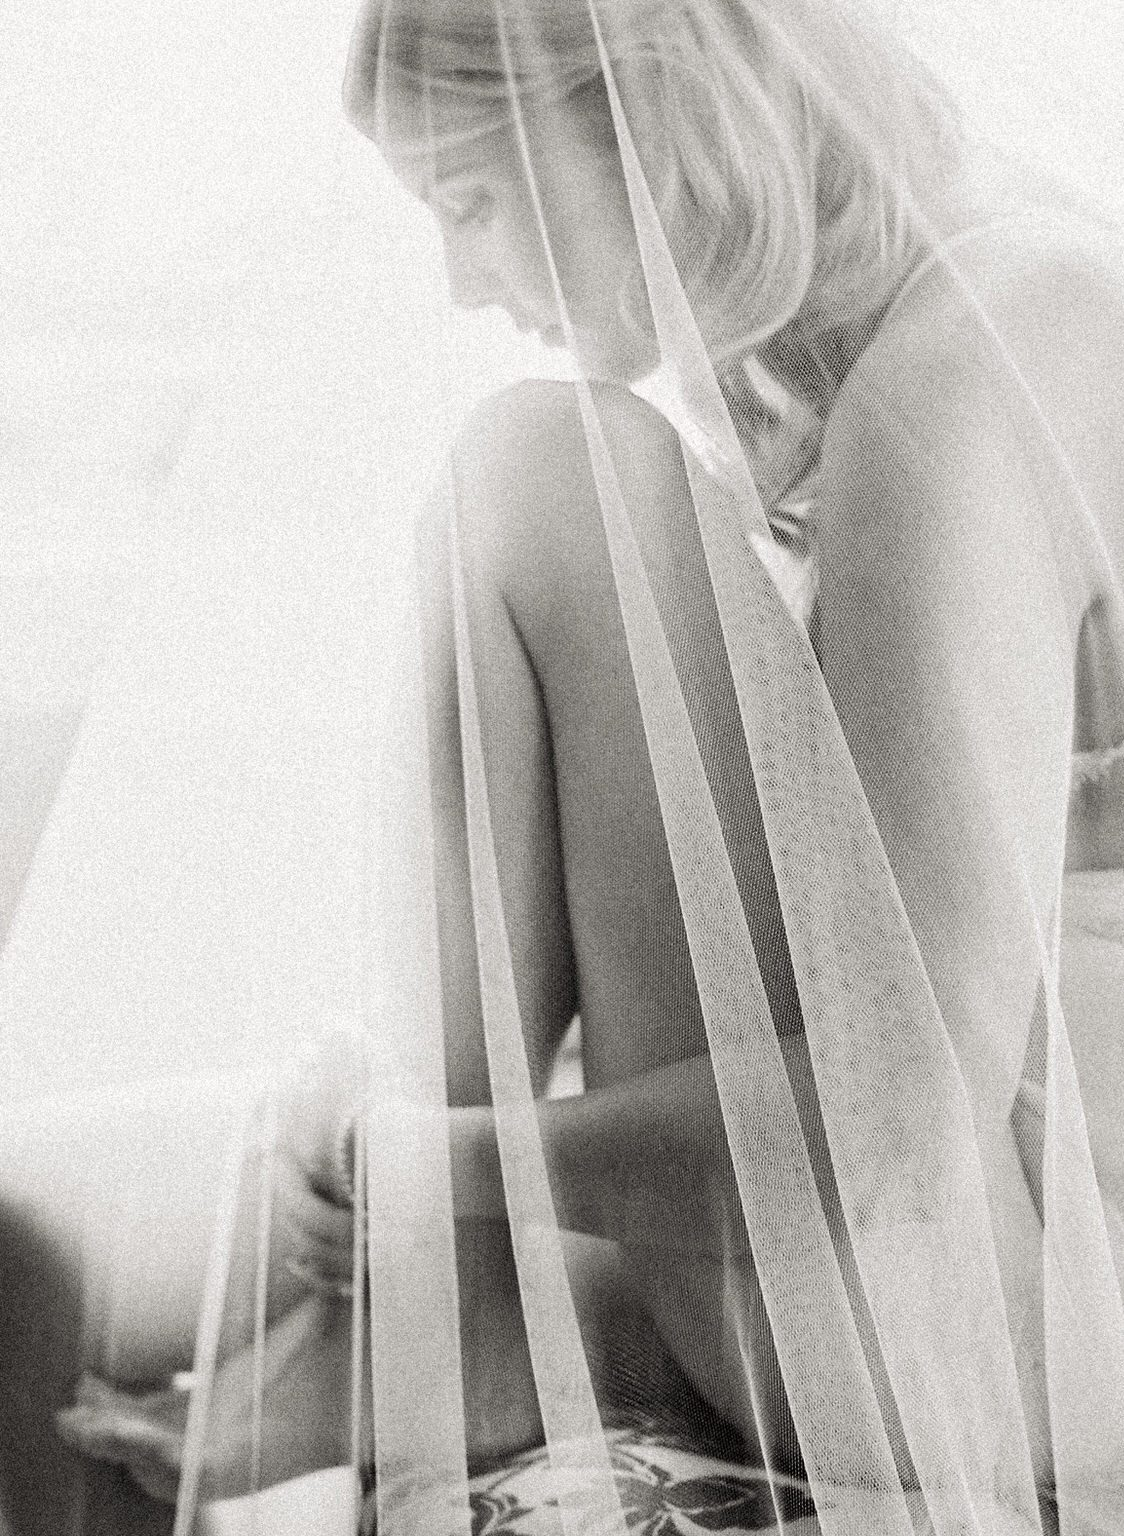 black and white bridal boudoir photo with veil